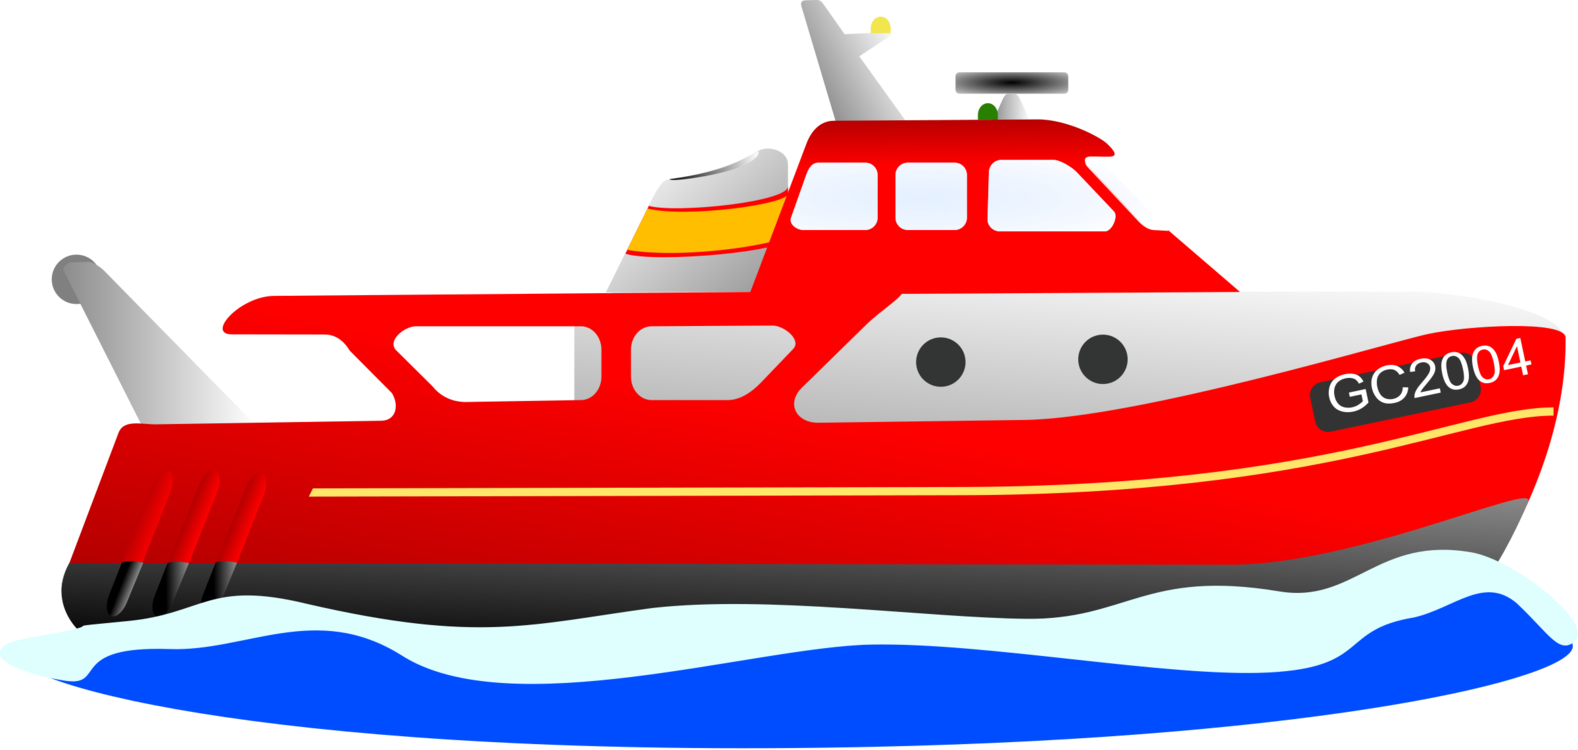 Watercraft,Naval Architecture,Water Transportation